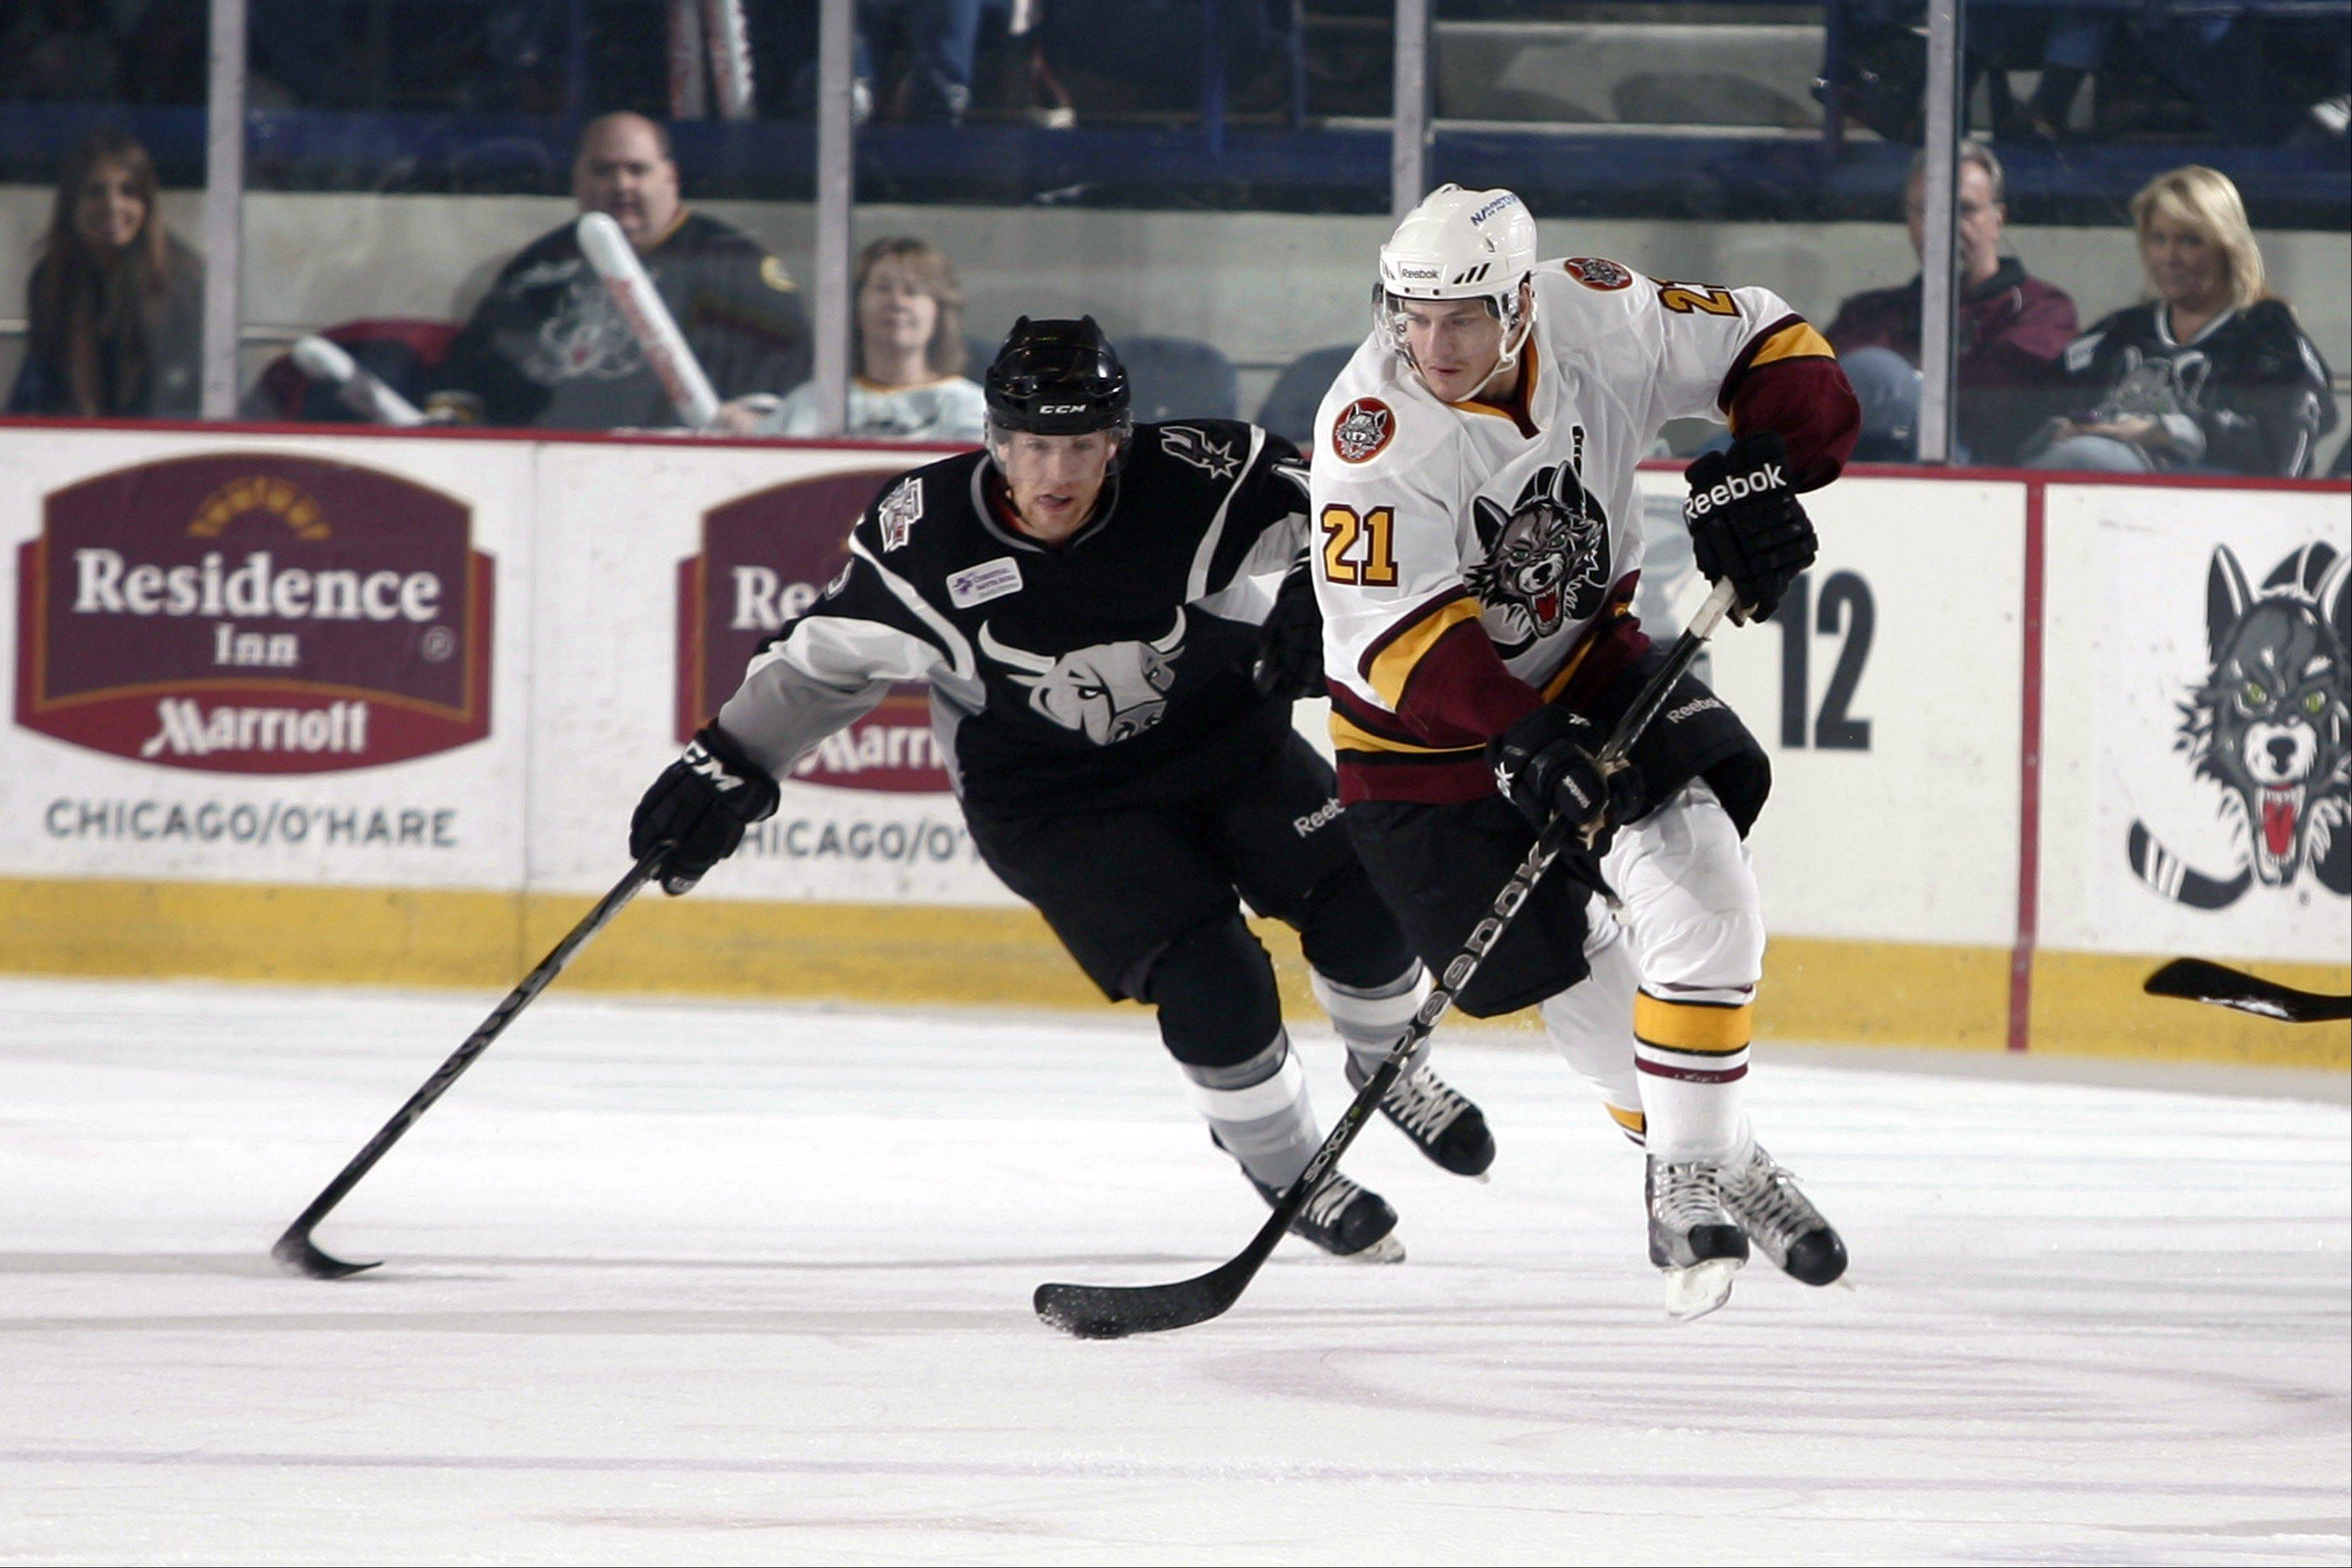 Wolves center Kevin Doell has 5 points against San Antonio in the Turner Cup playoffs, with Game 5 at 7:30 p.m. Friday at Allstate Arena. Wolves center Steve Reinprecht scored two key goals Wednesday to avoid elimination and set up Friday's decisive match.